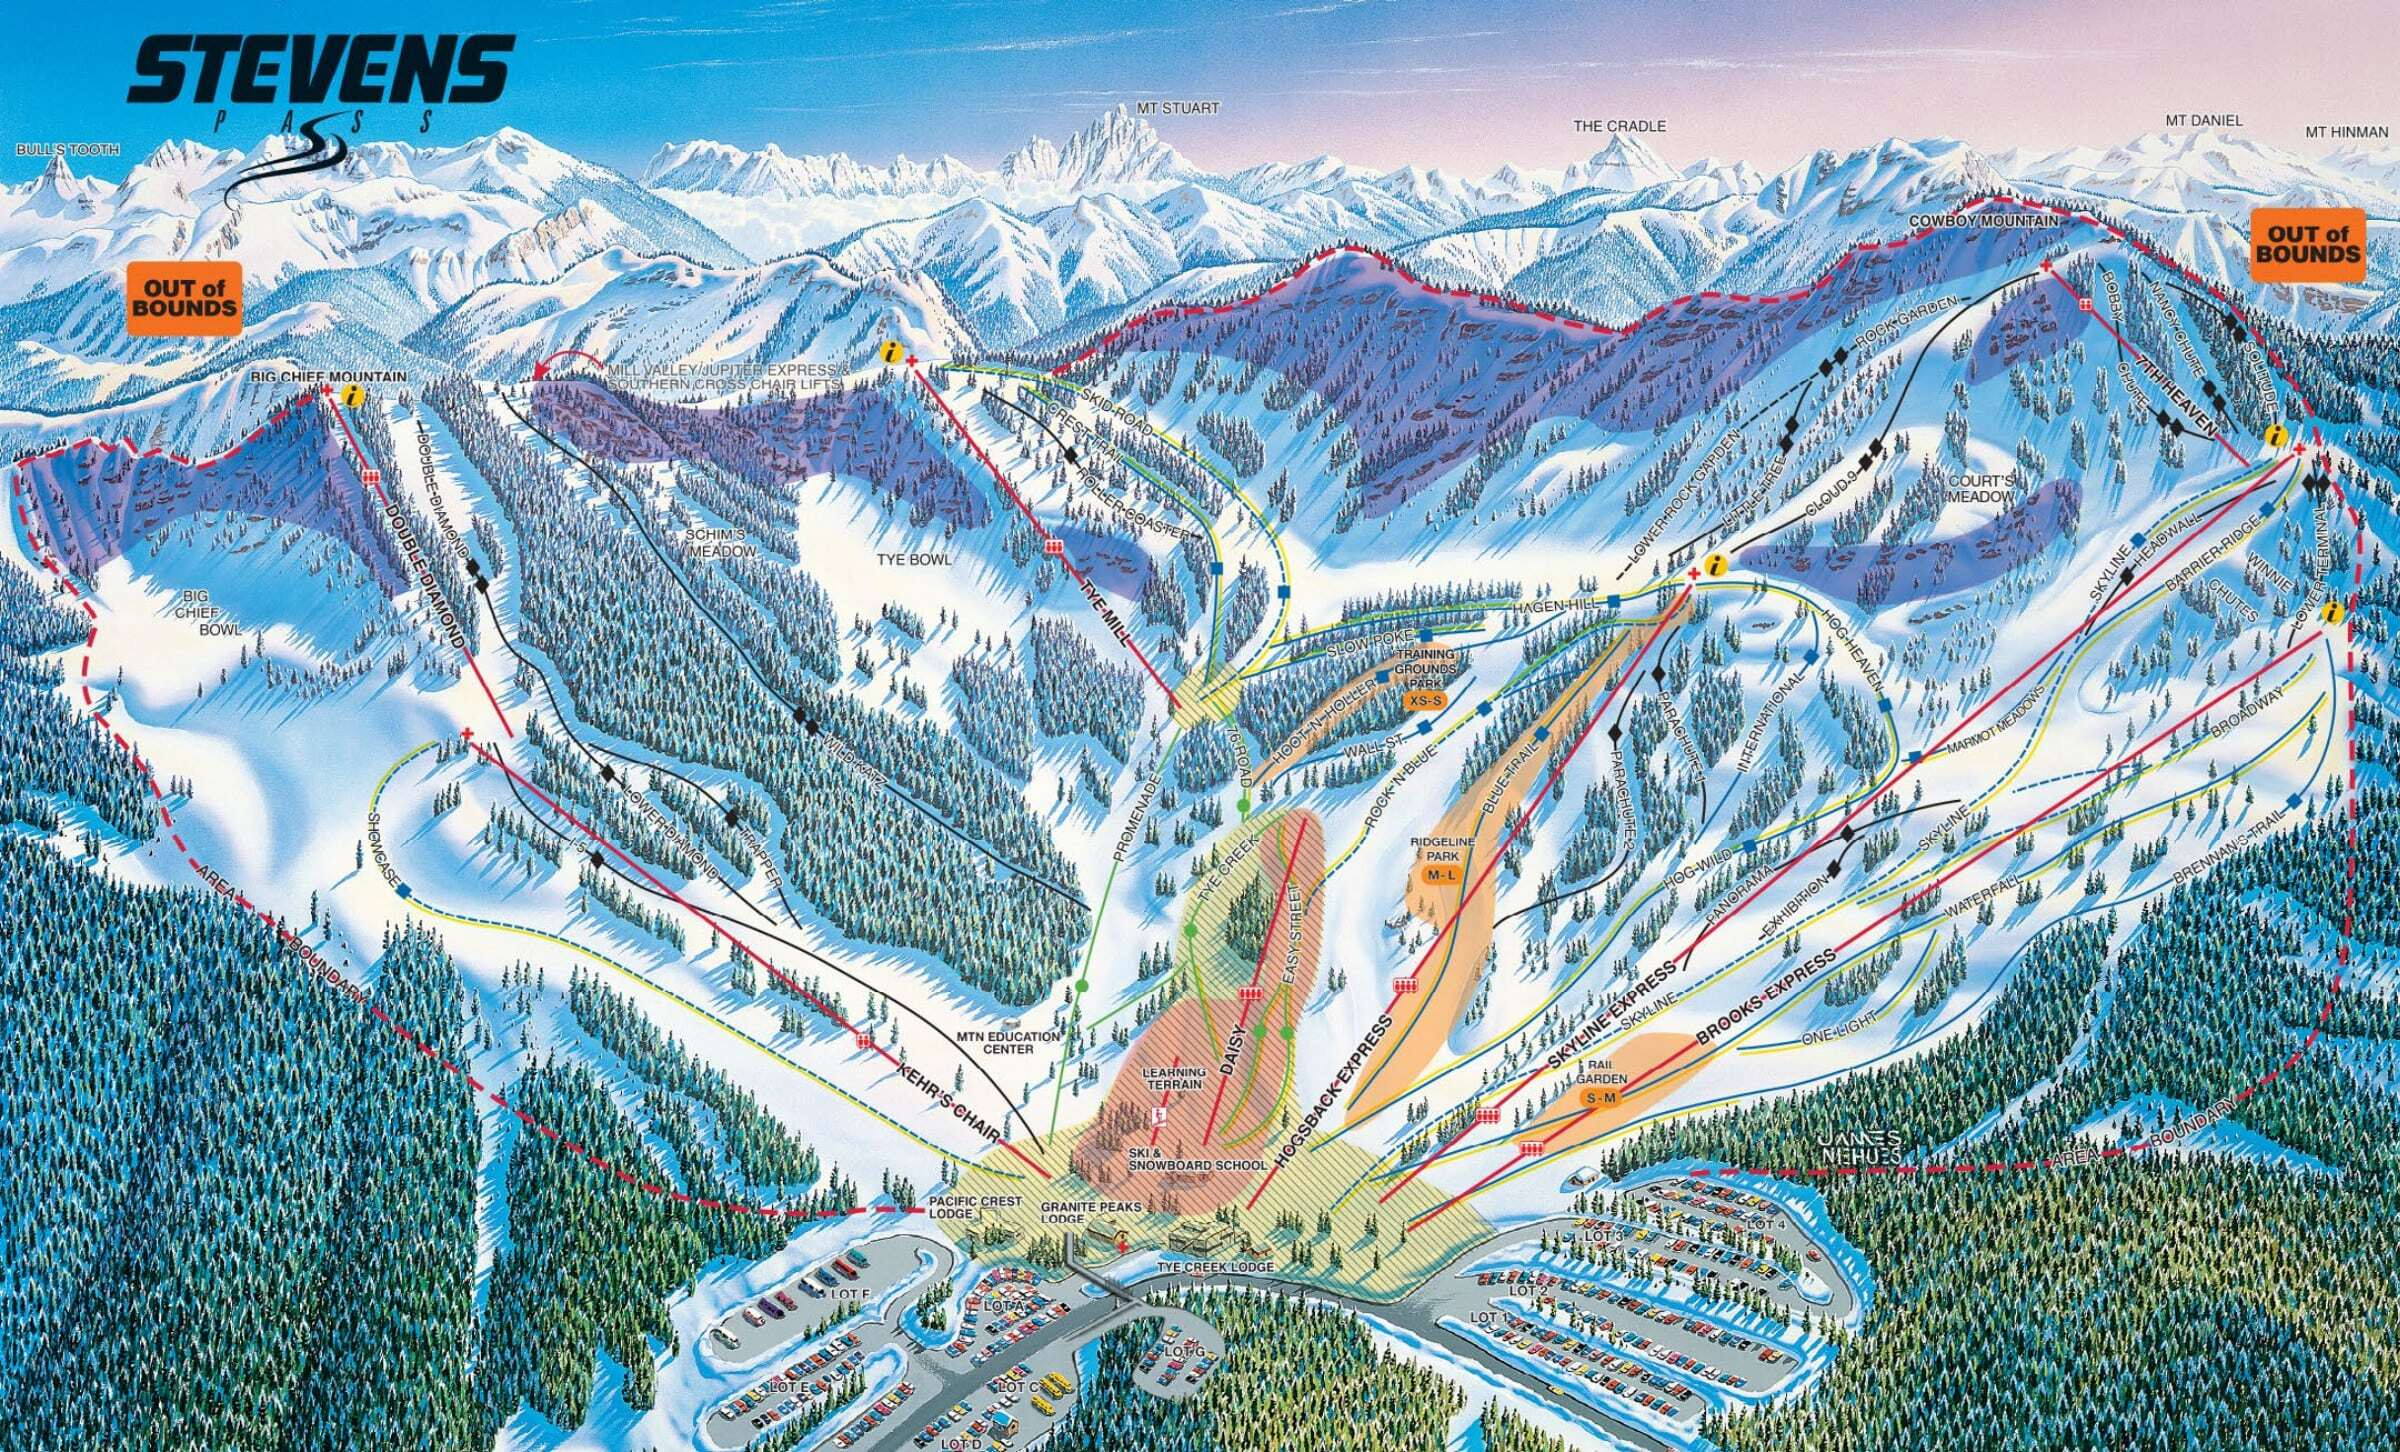 Stevens Pass Ski Resort Guide Location Map Stevens Pass Ski